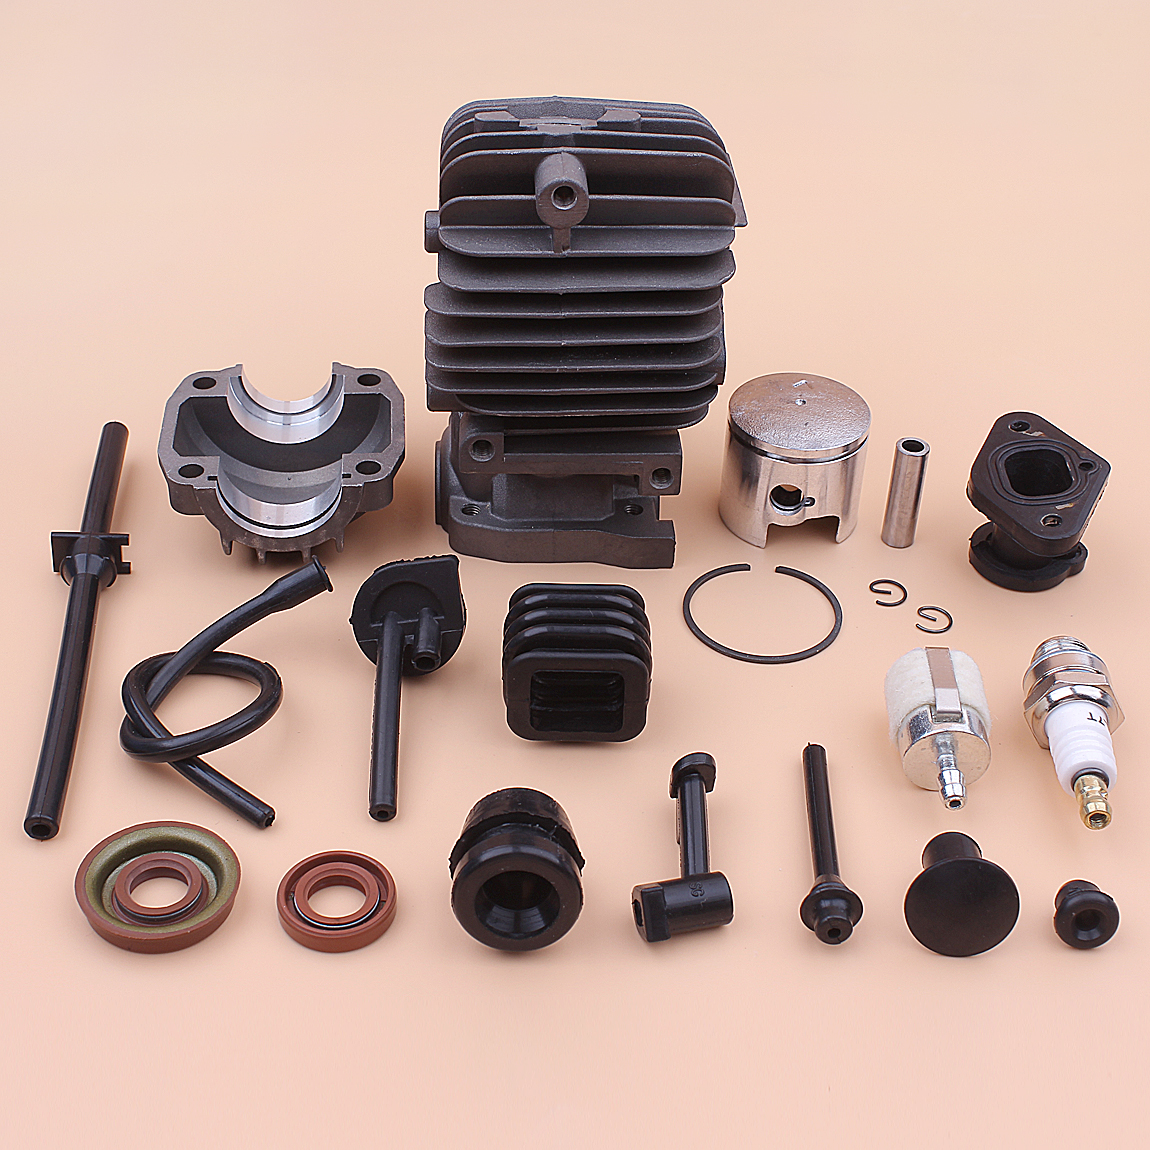 34mm Cylinder Piston Pin Ring Circlips Kit For Chinese 2500 25CC Chainsaw Parts